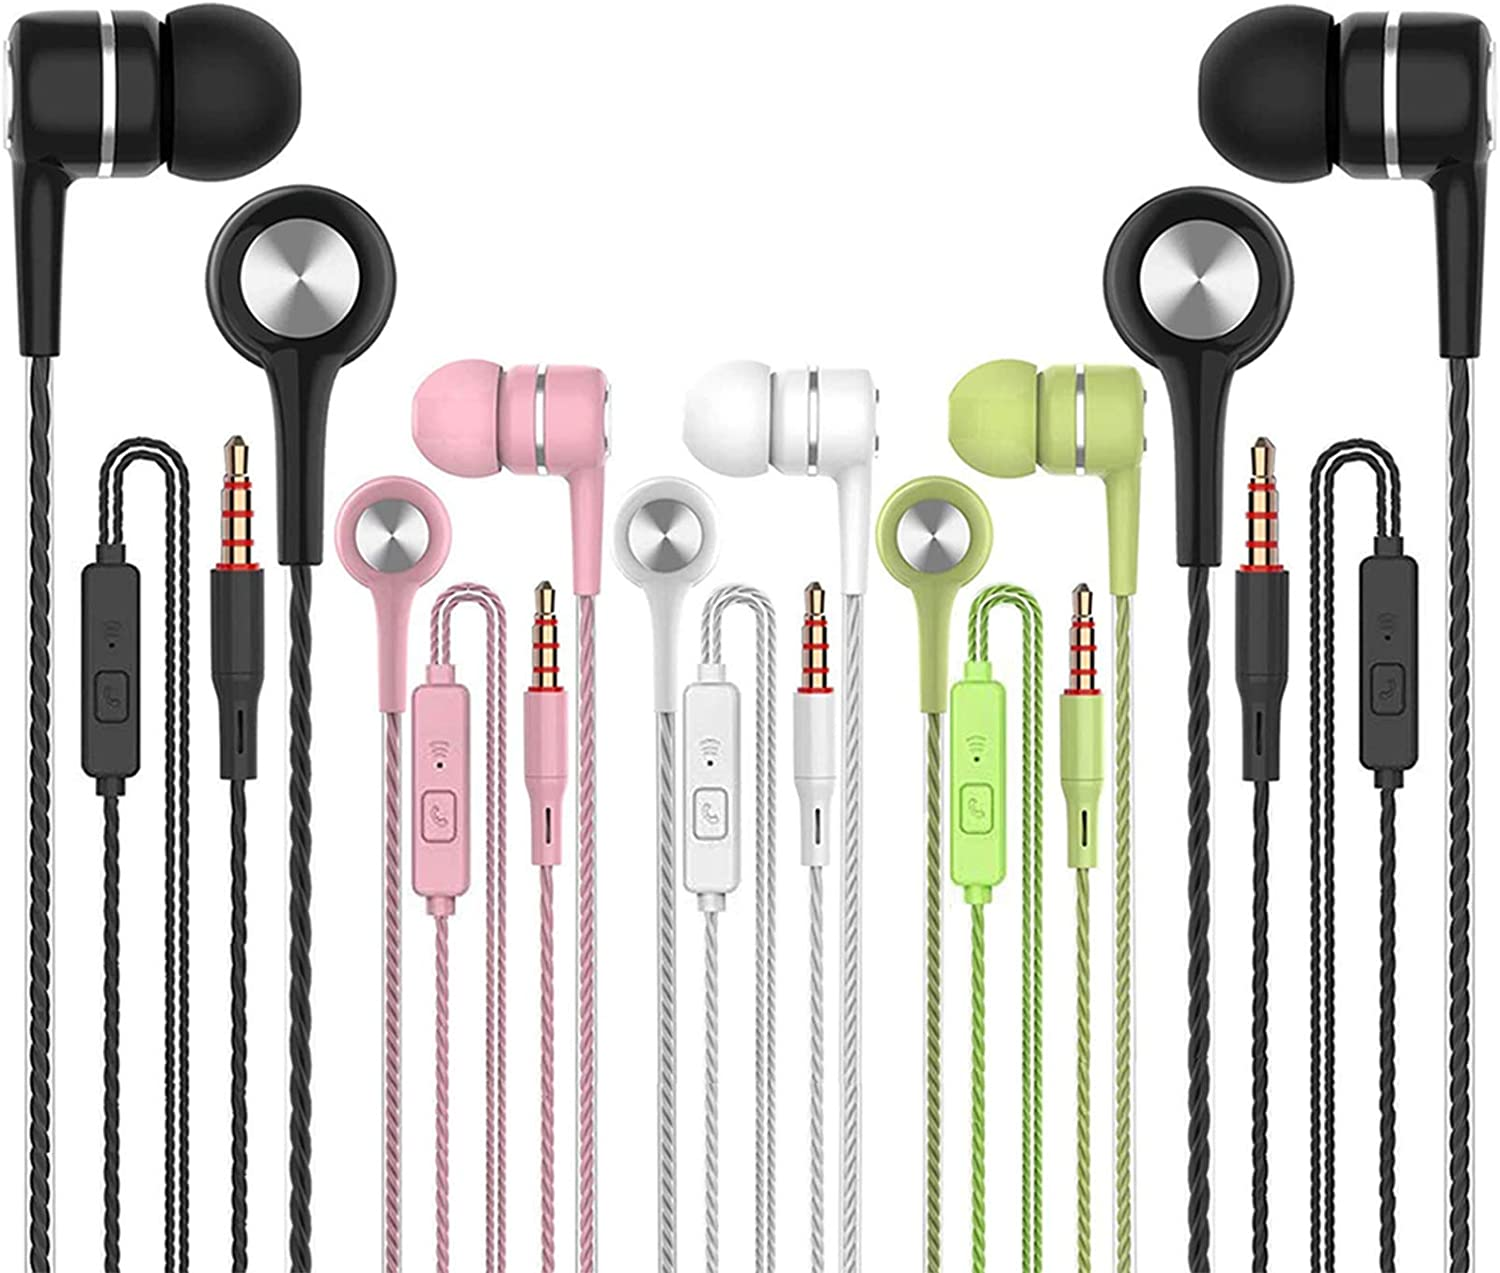 Earbuds Earphones with Microphone,5pack Ear Buds Wired Headphones,Noise Islating Earbuds,Fits 3.5mm Interface for iPad,iPod,Mp3 Players,Android and iOS Smartphones(Black+Pink+White+Green)